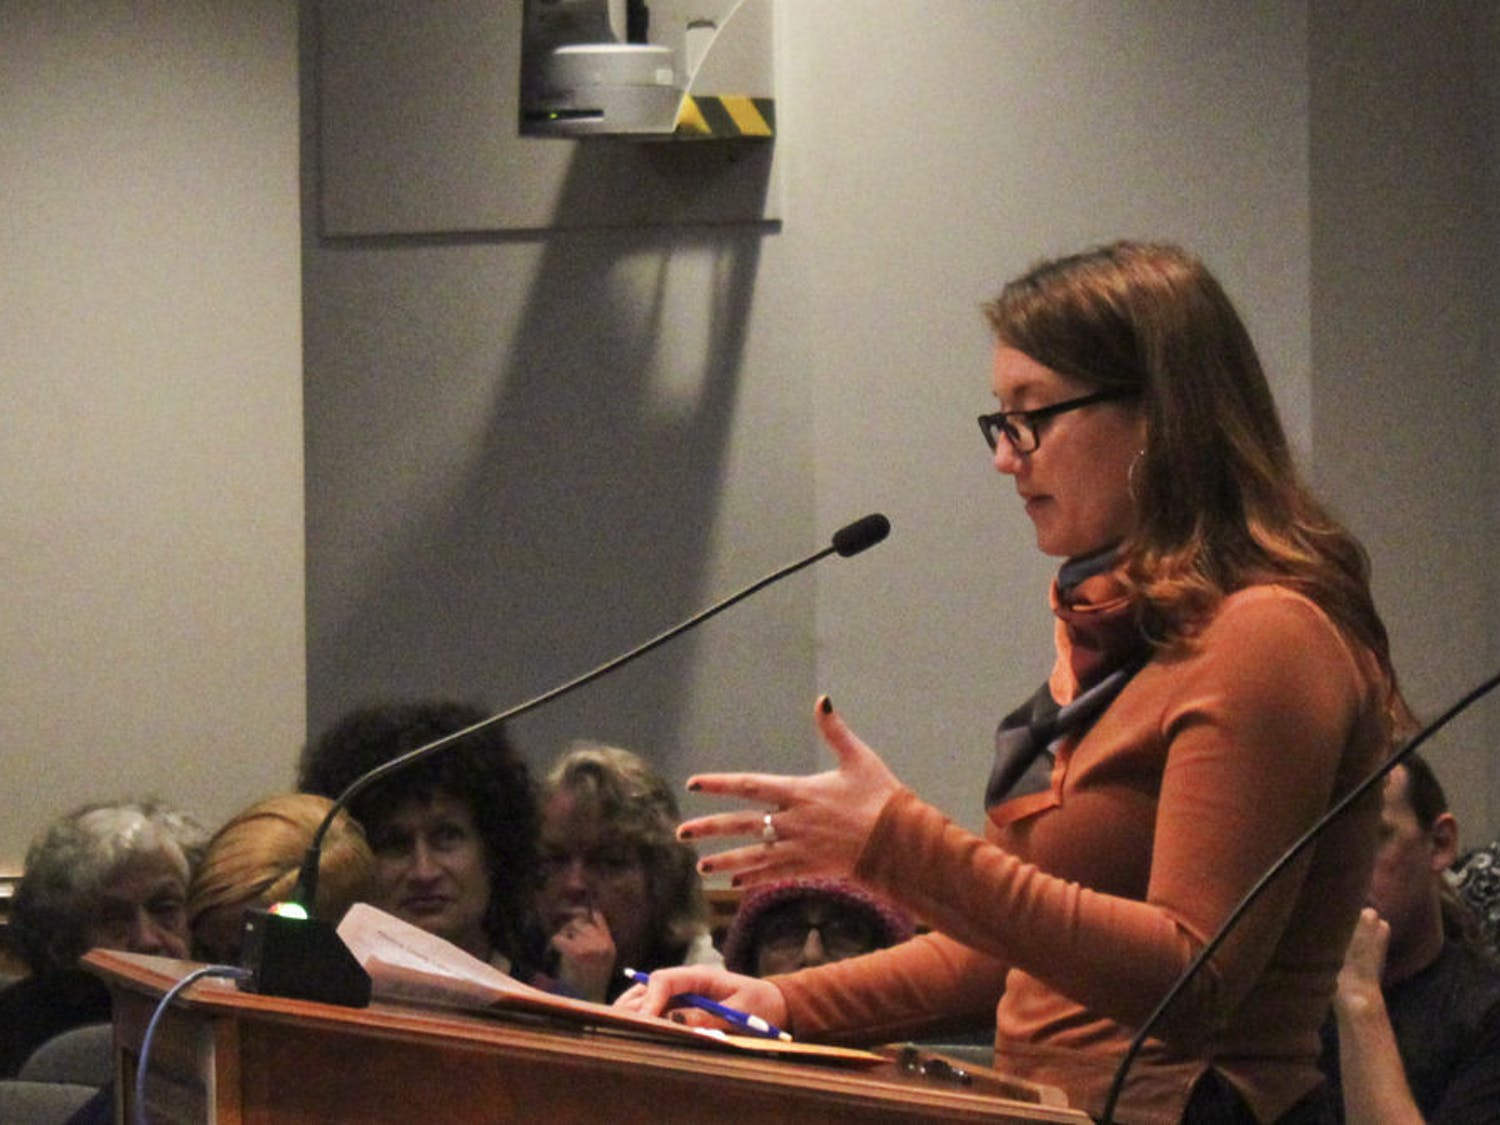 Lauren Byers, a 24-year-old UF history senior, speaks during a city commission meeting on Thursday evening. Byers said she was disappointed with Mayor Ed Braddy's response to the Alachua County Labor Coalition's demand for a $15 minimum wage.